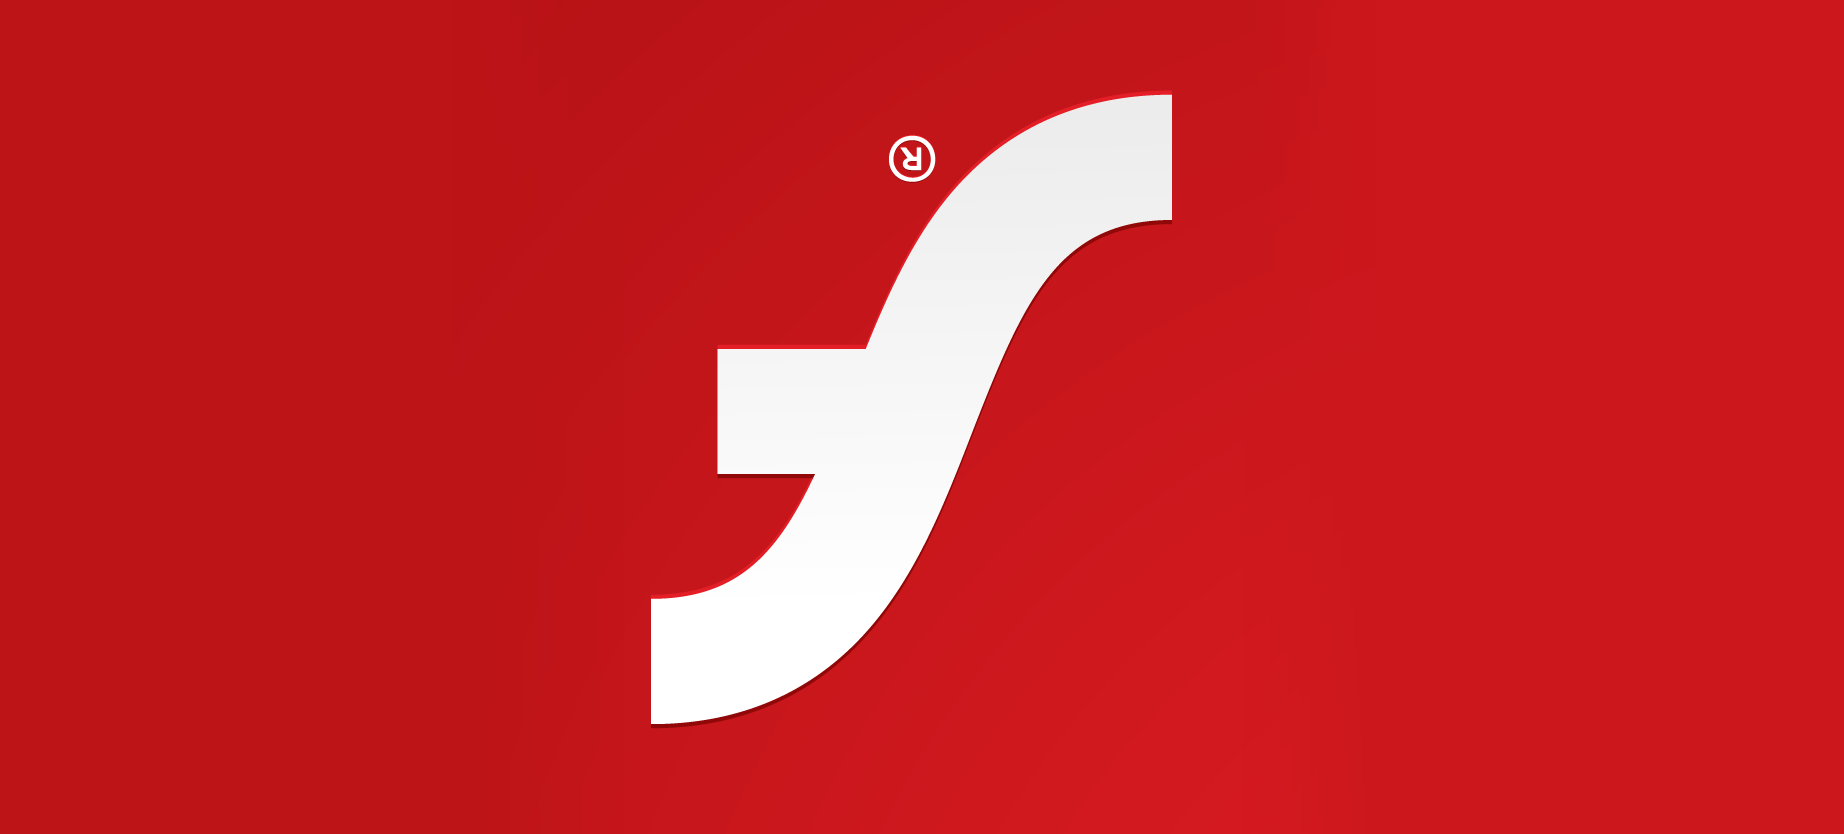 adobe adobe-flash ads flash google